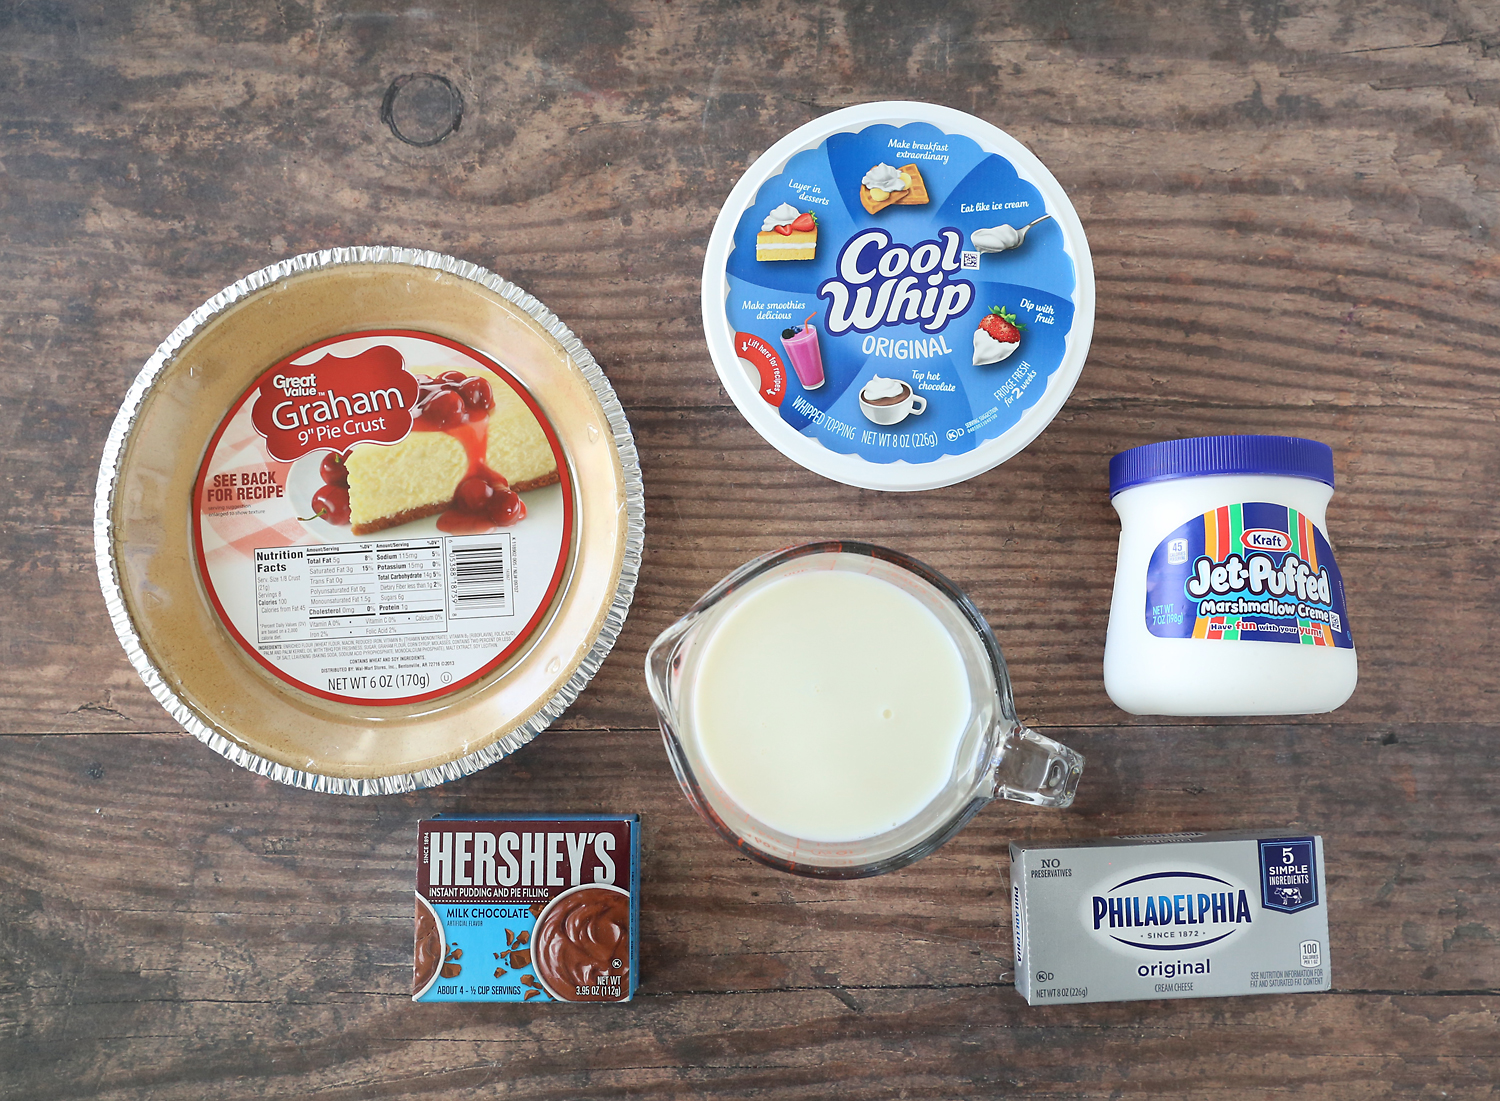 Ingredients: graham cracker pie crust, chocolate pudding, milk, cream cheese, marshmallow fluff, whipped topping